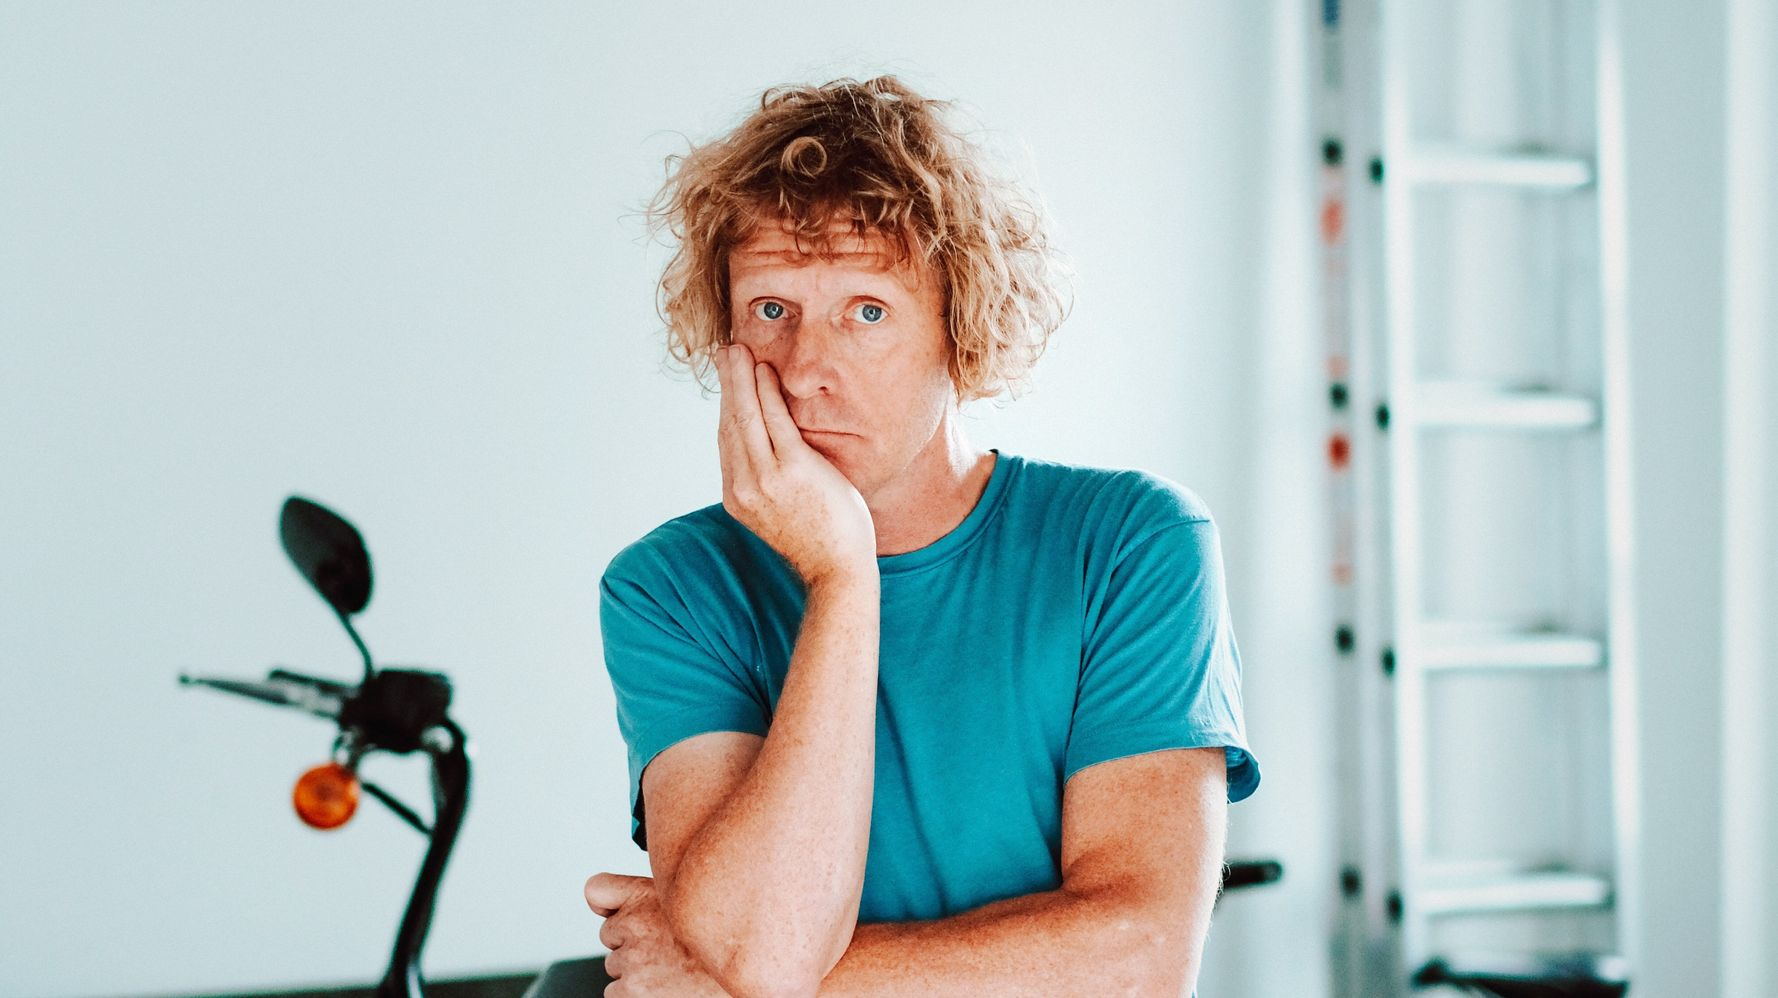 Grayson Perry On Why Old-School Masculinity Is Man's Greatest Enemy